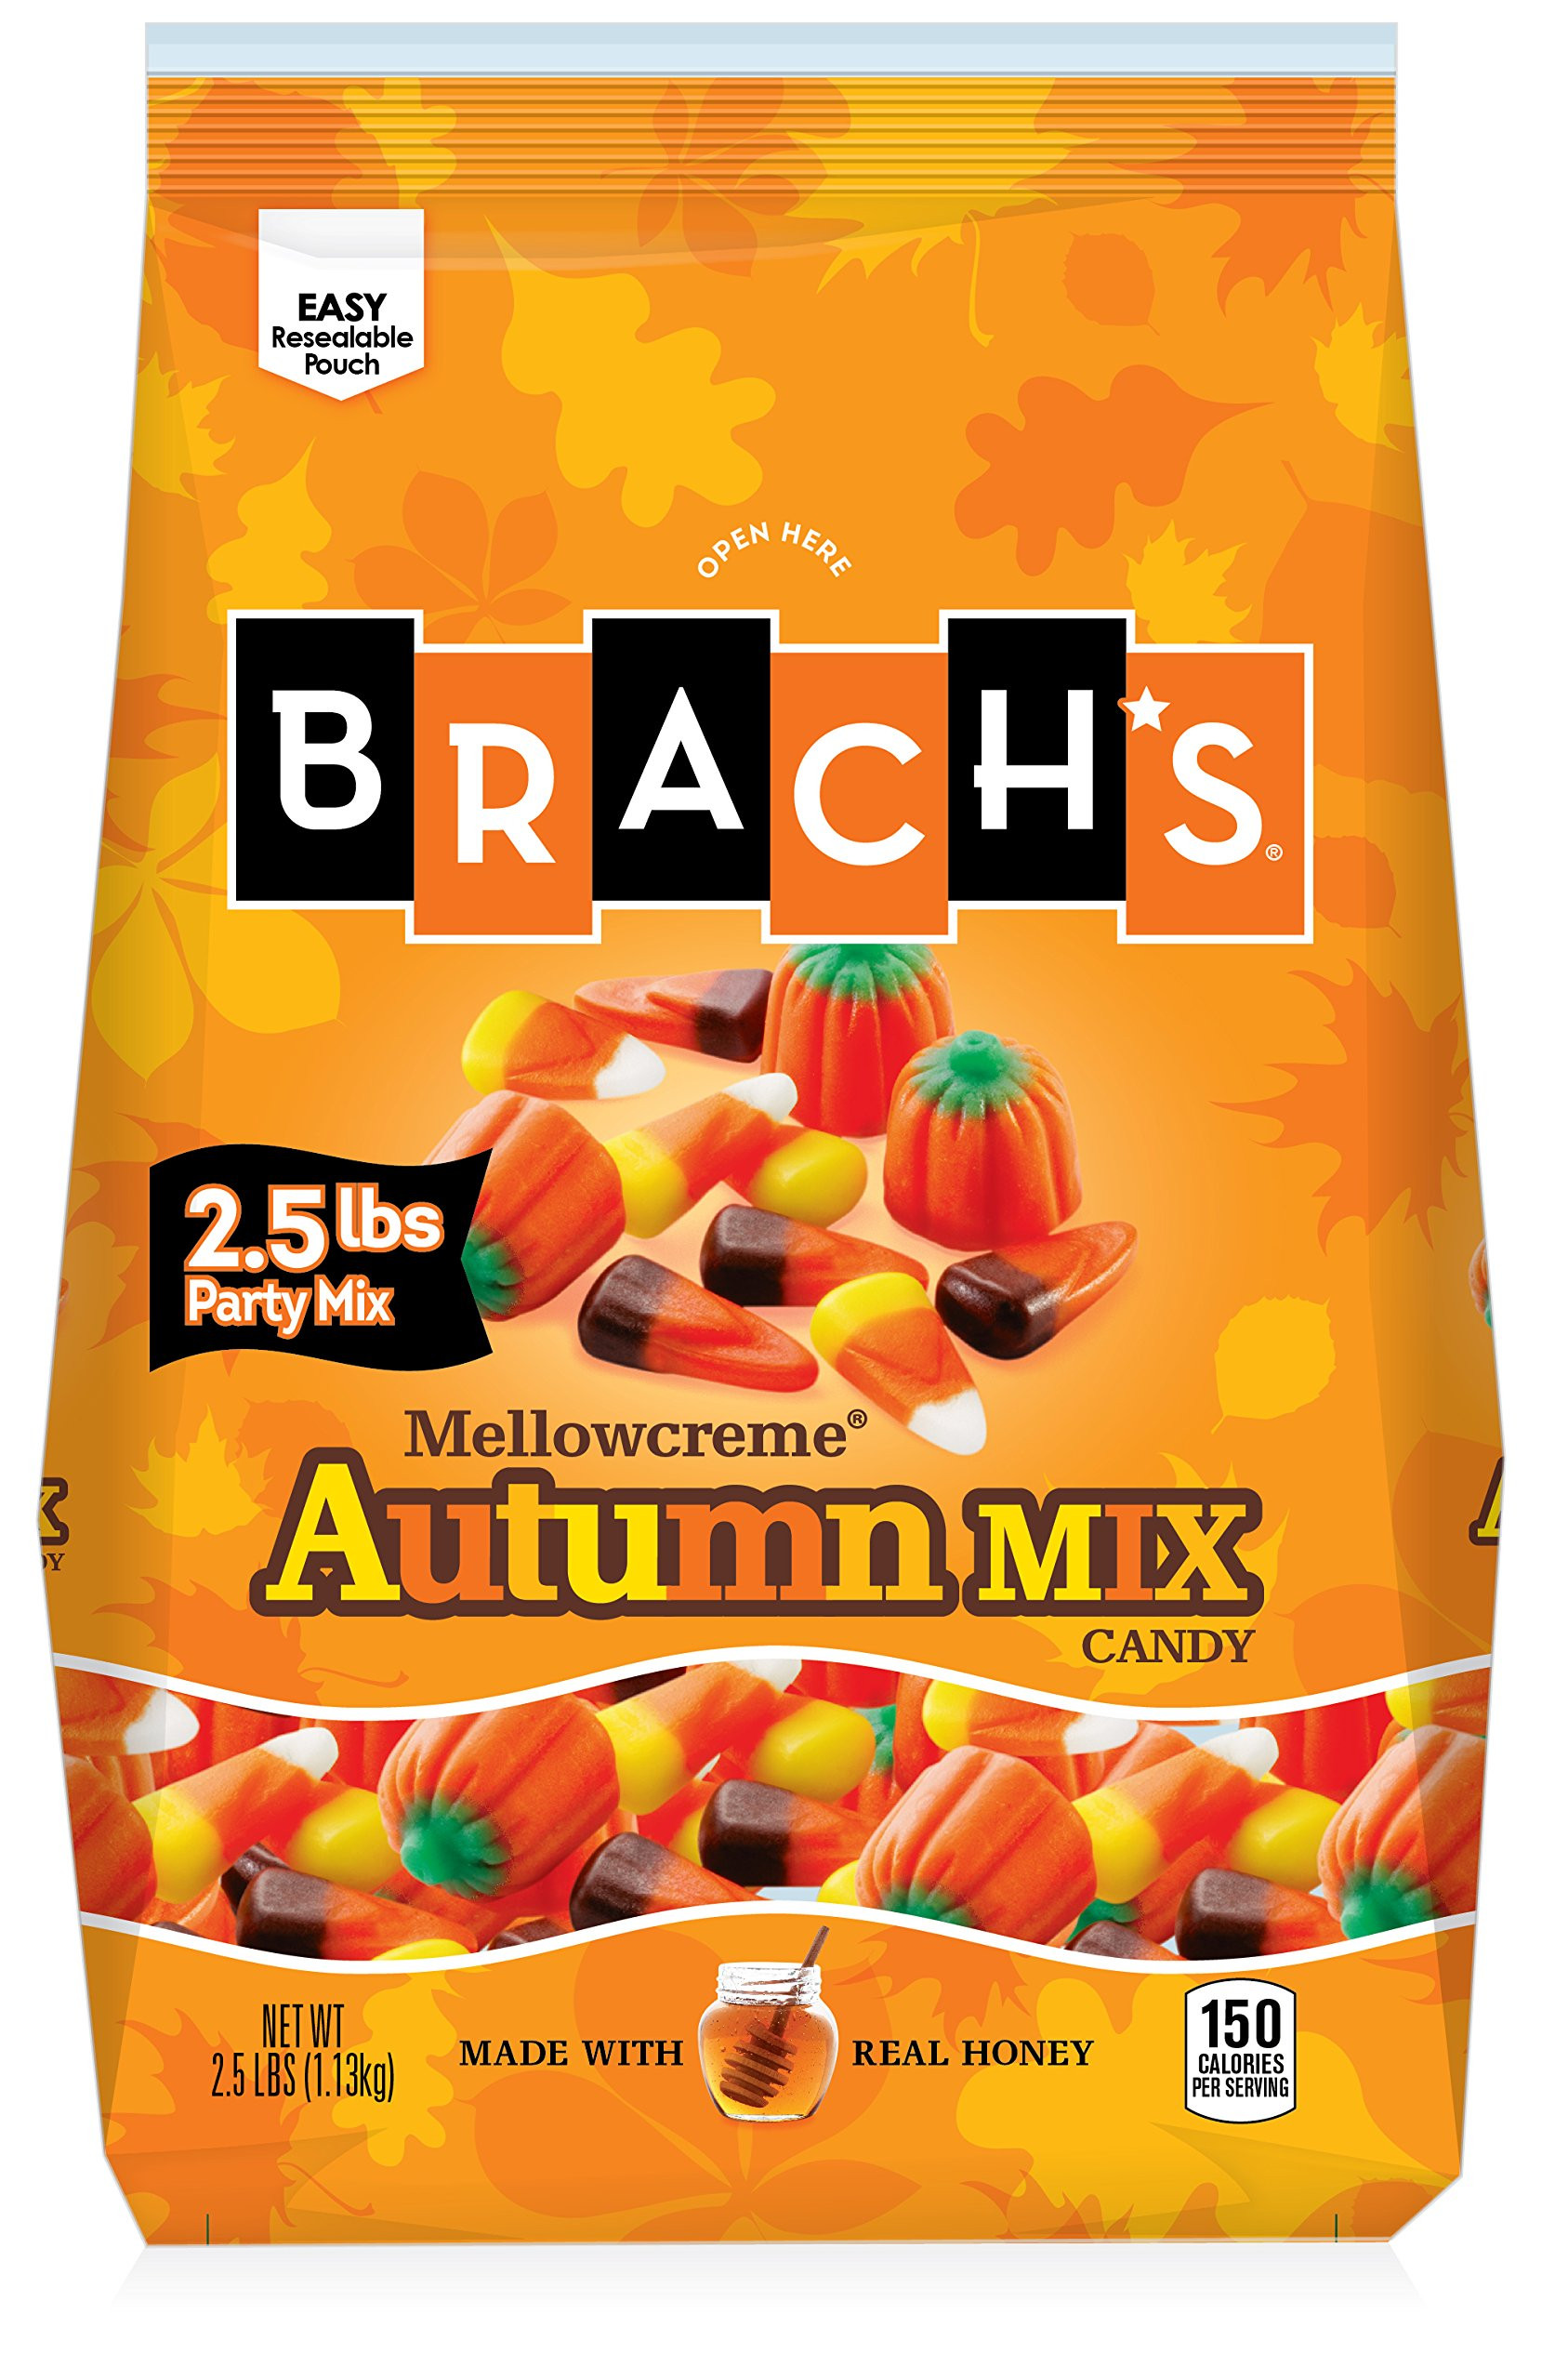 Mellowcreme Christmas Candy  Amazon Brach s Candy Corn and Autumn Mix Duo 2